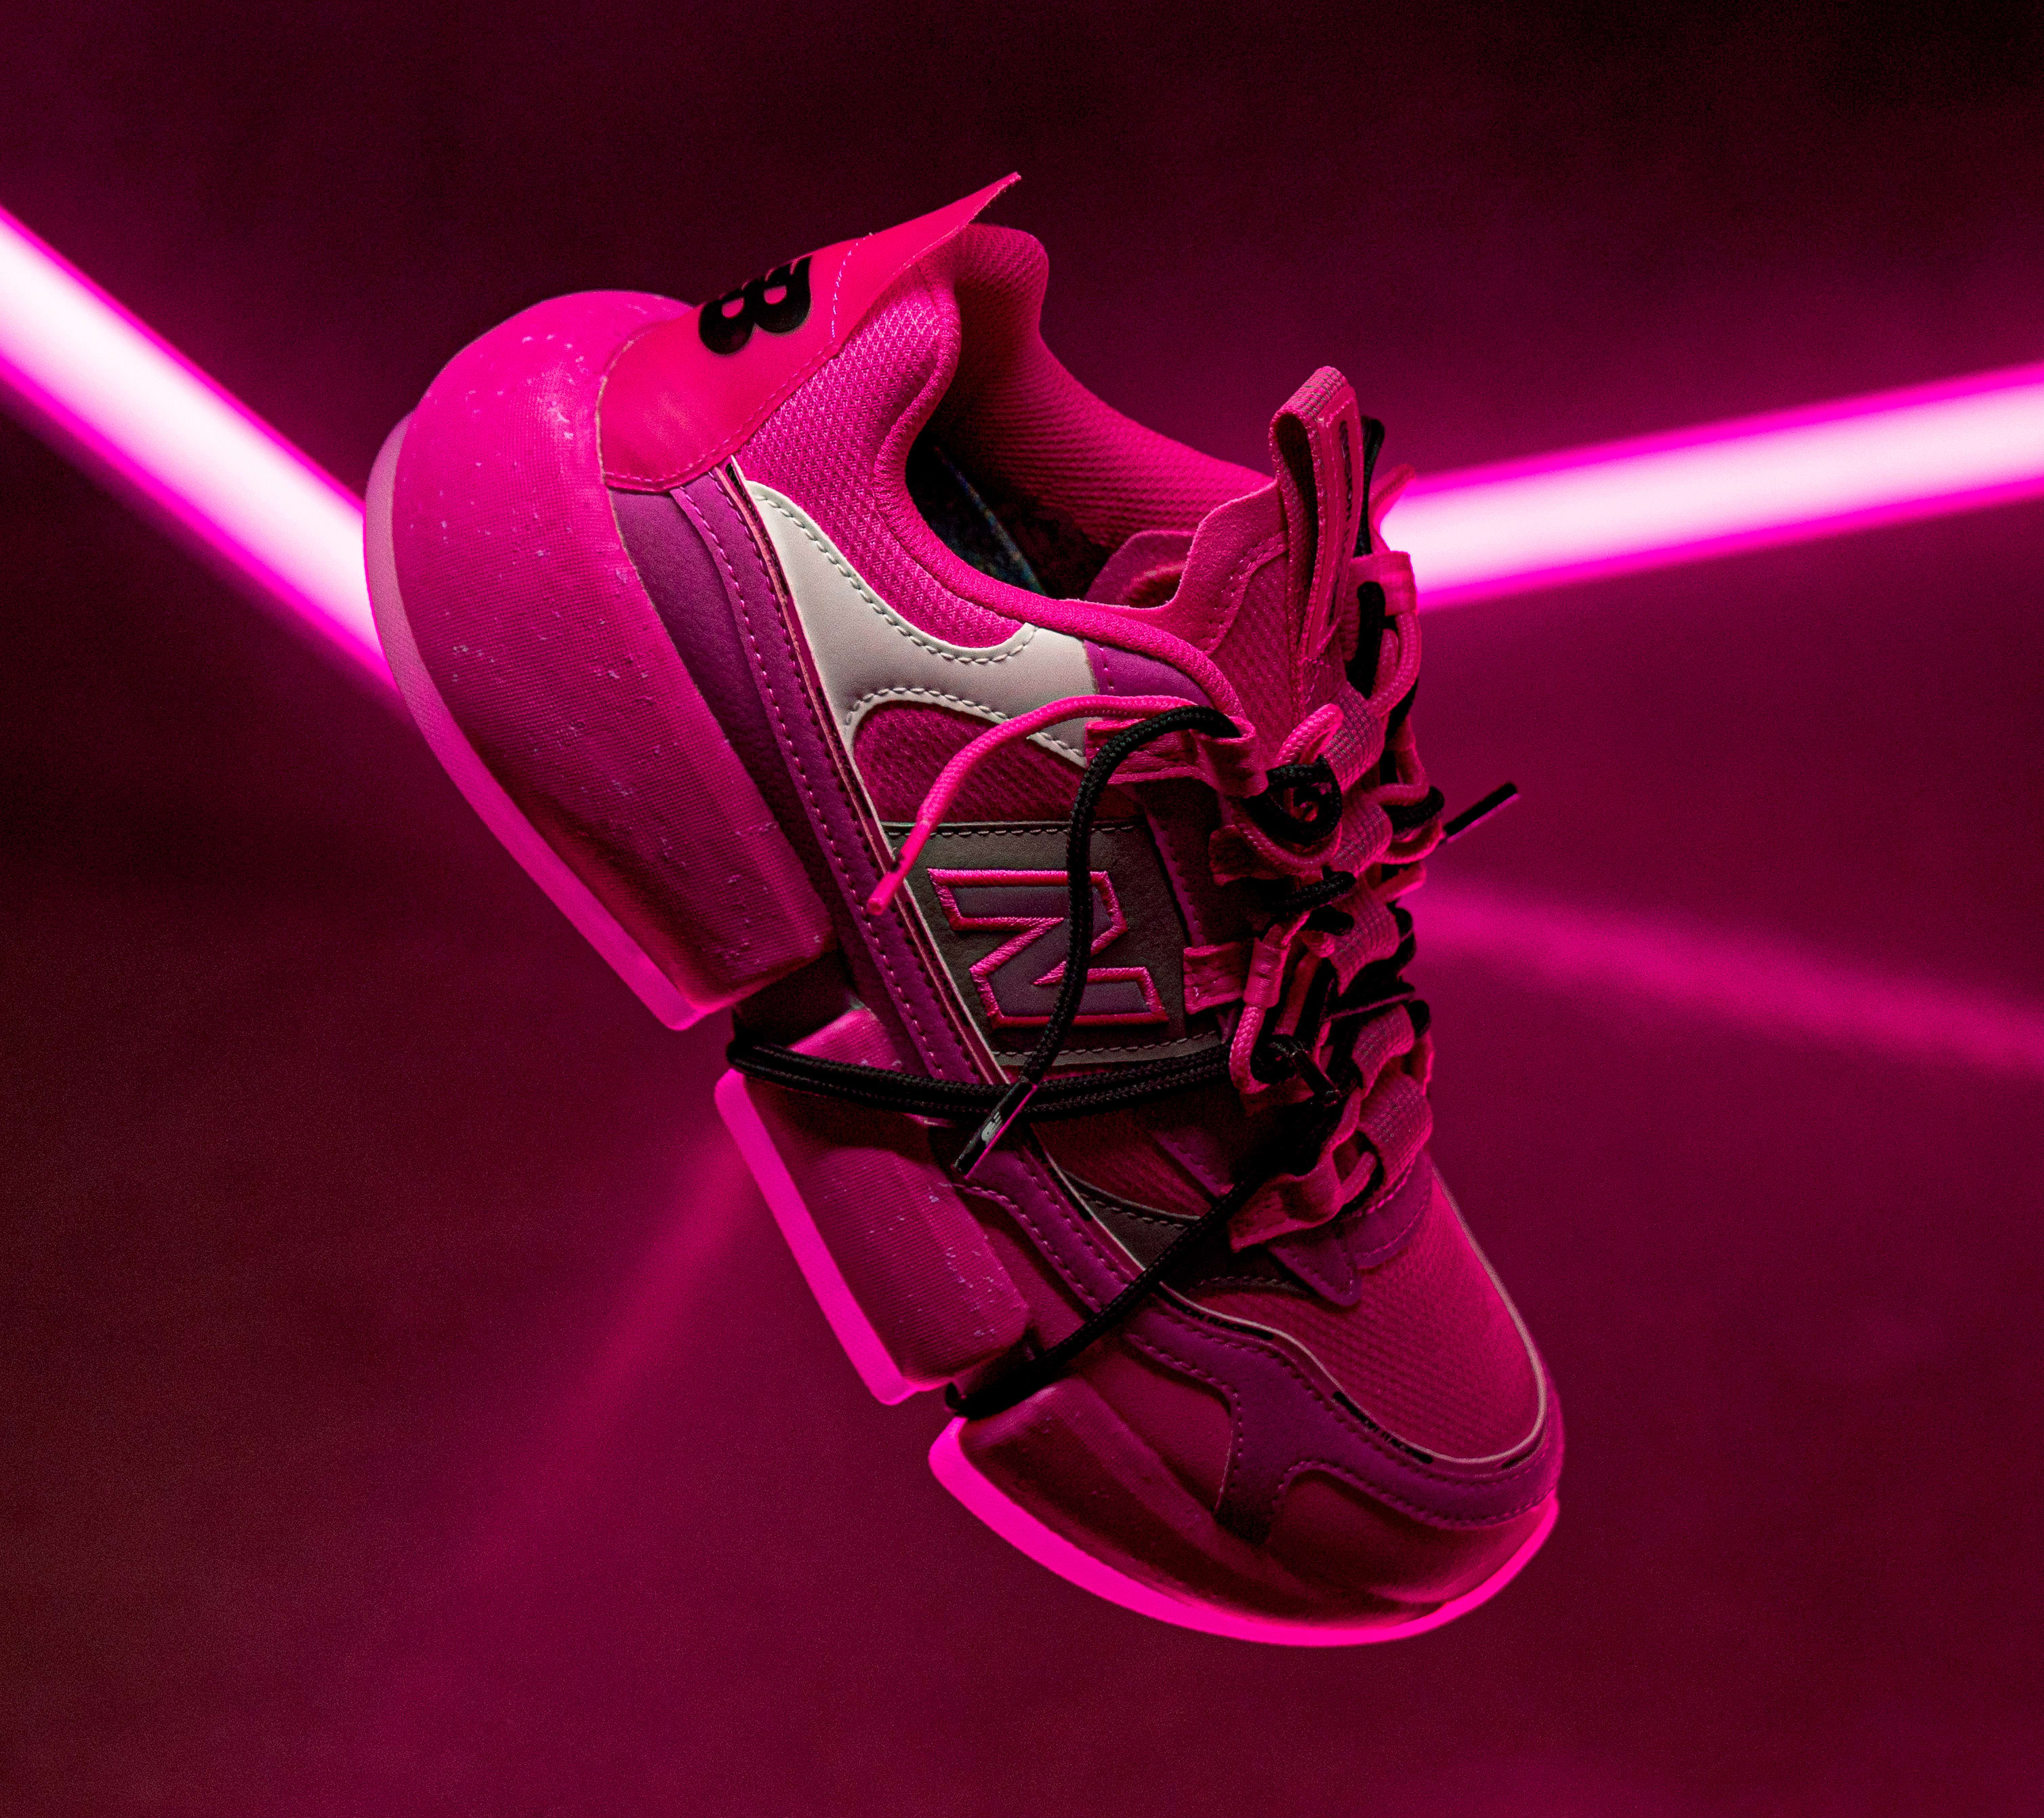 Jaden Smith x New Balance Vision Racer 'Pink' MSVRCJSC Lateral